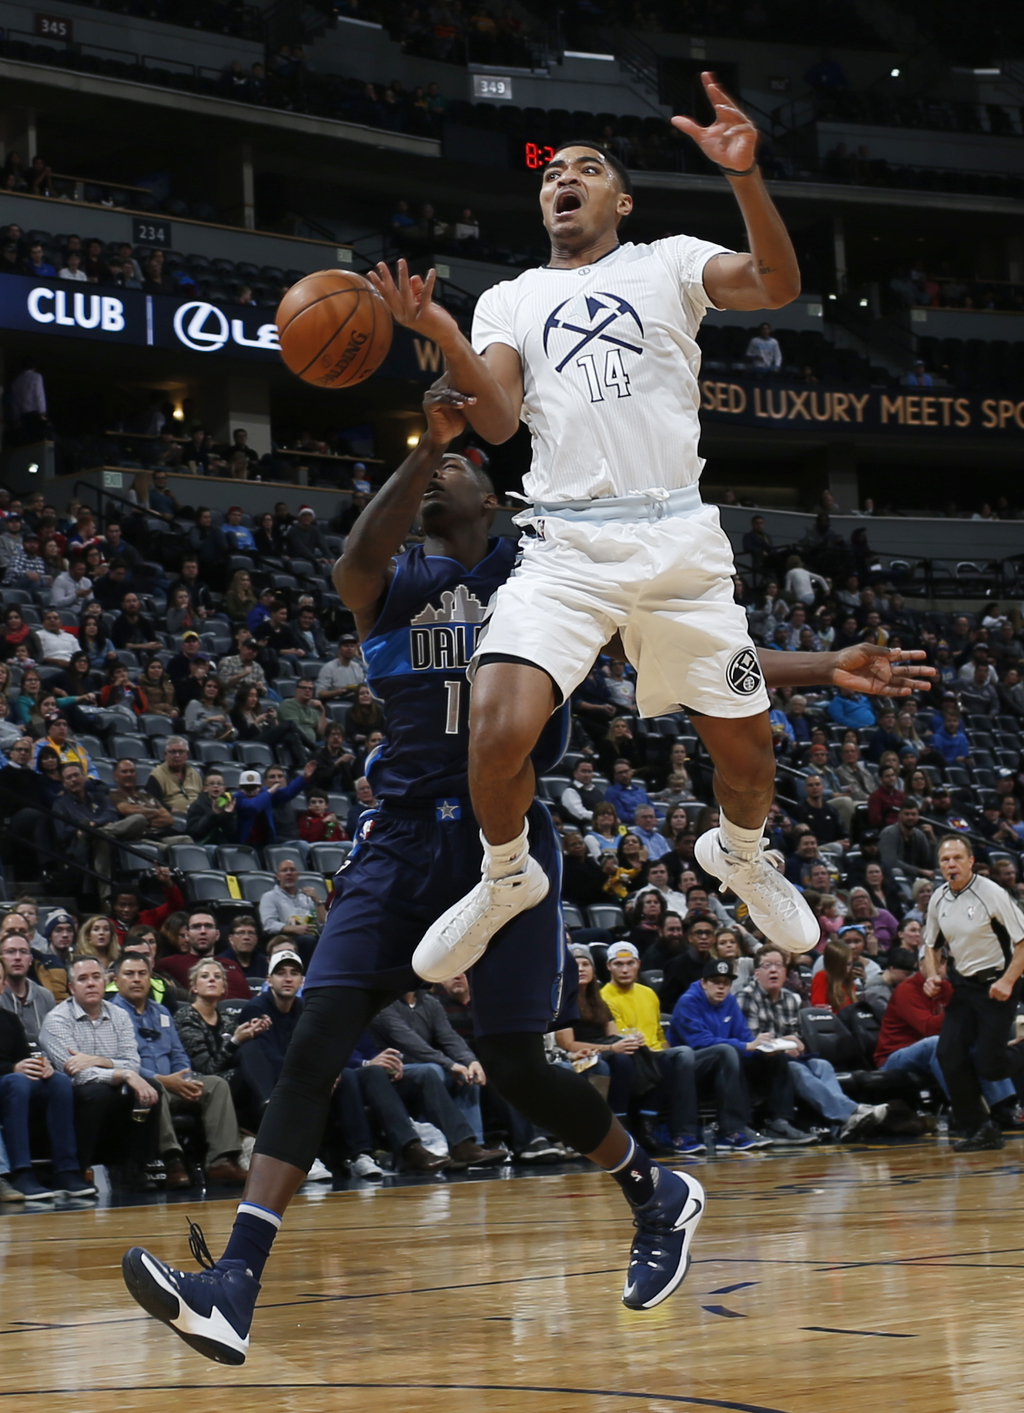 Denver Nuggets guard Gary Harris, front, is fouled as he goes up for a basket by Dallas Mavericks forward Dorian Finney-Smith in the se...